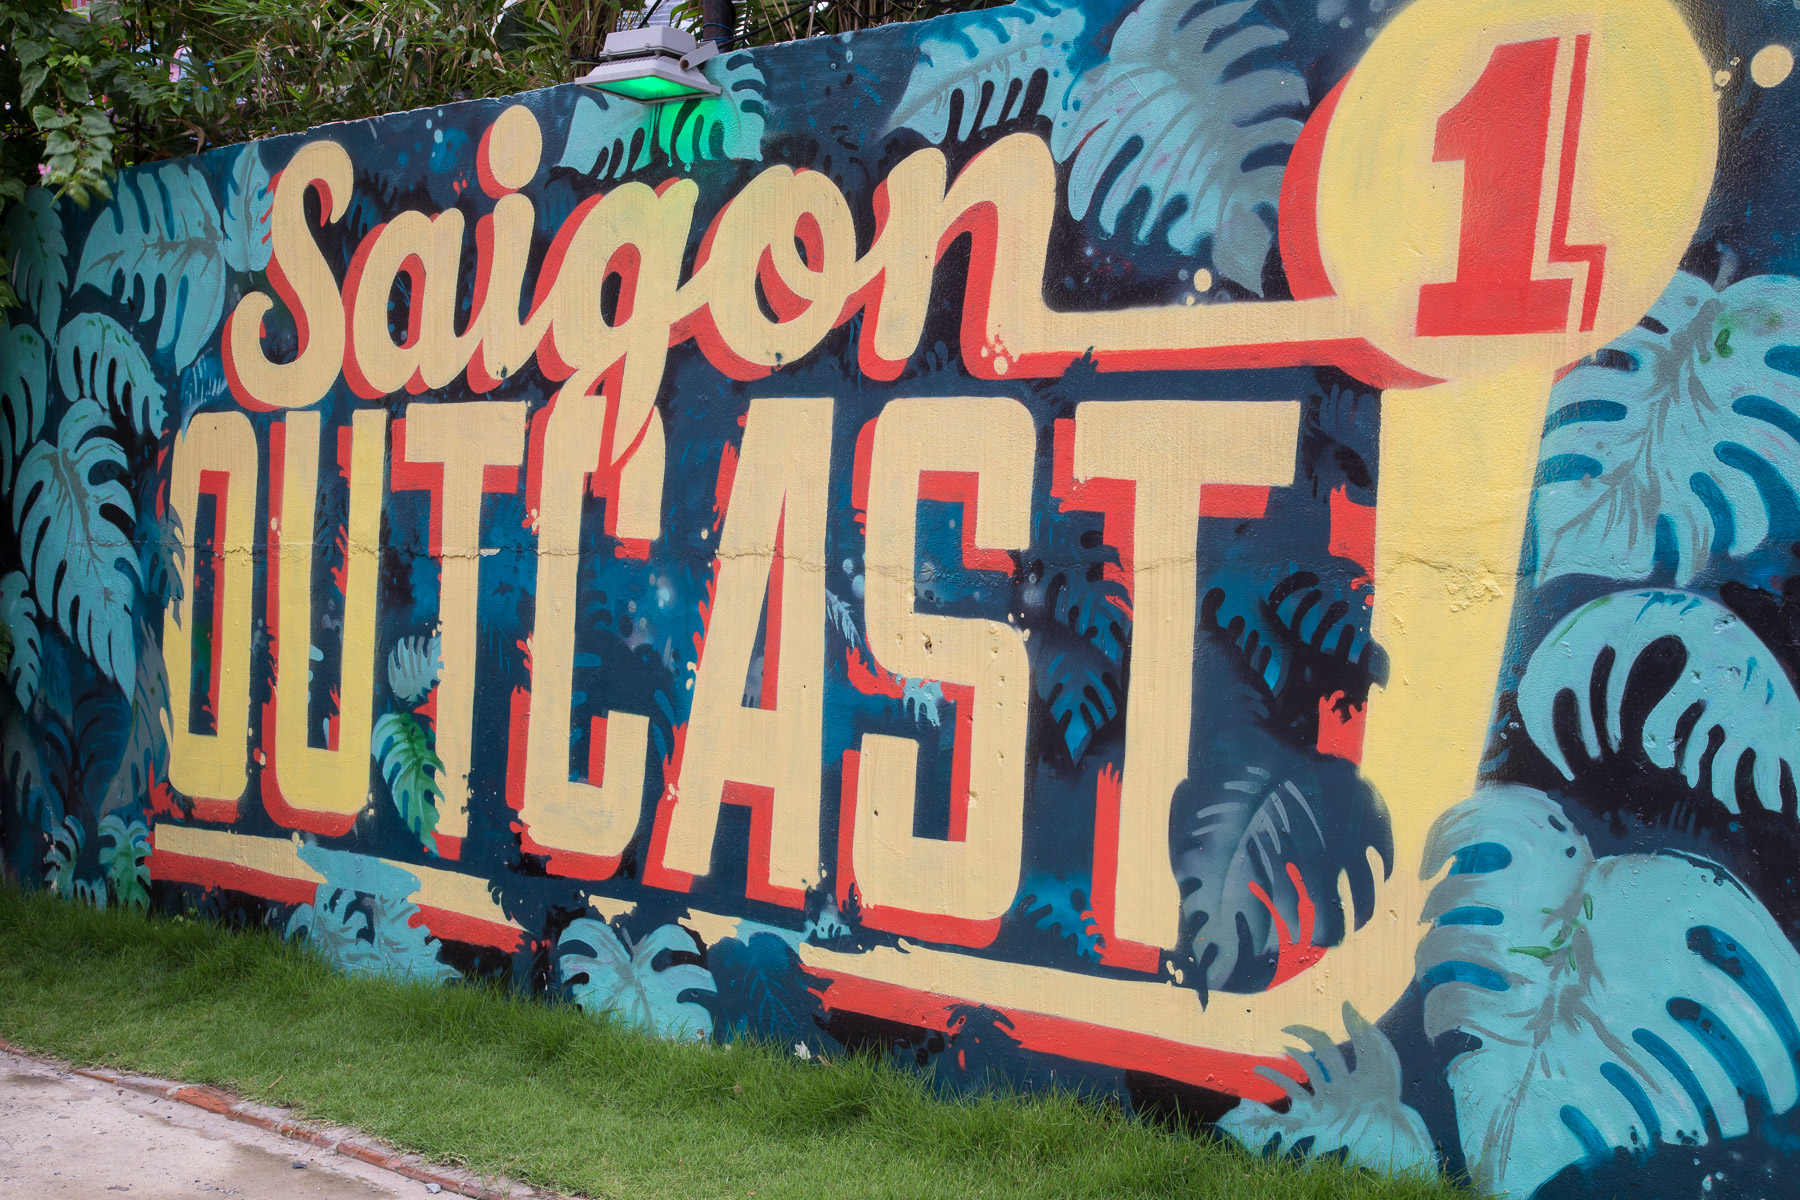 Saigon Outcast, a popular venue for live music, rock climbing and hanging out in the burgeoning expat suburb of District 2 in Ho Chi Minh City, Vietnam.